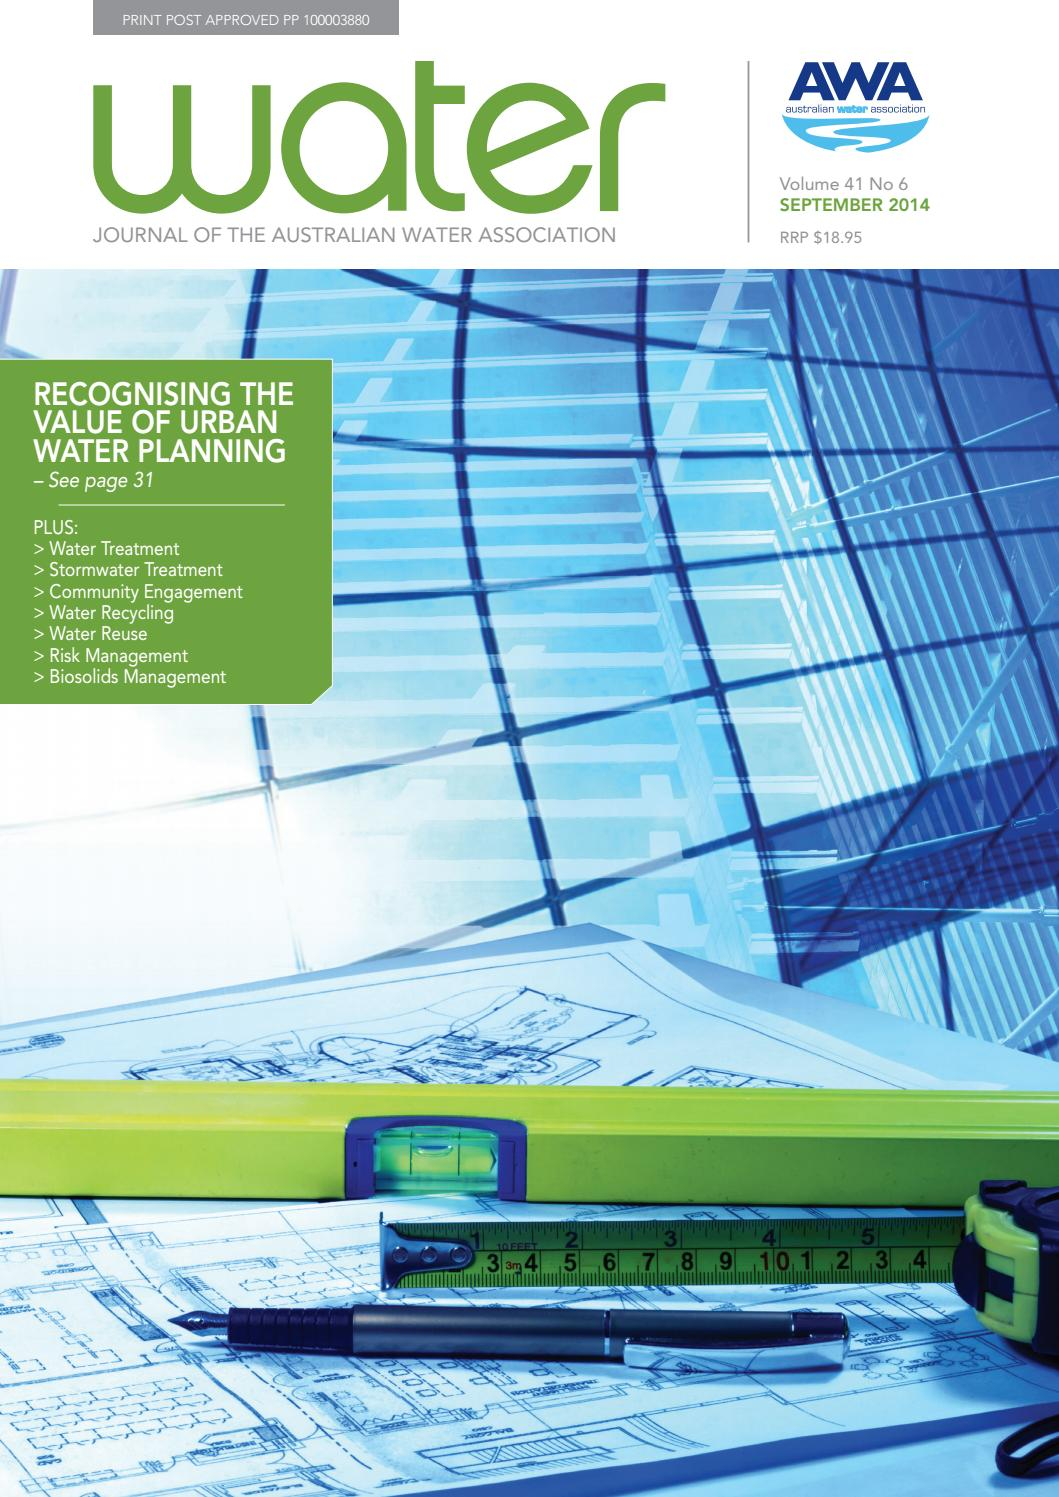 Water Journal September 2014 By Australianwater Issuu Kato N Scale Printed Circuit Board Pcb Lighting Kit For Up